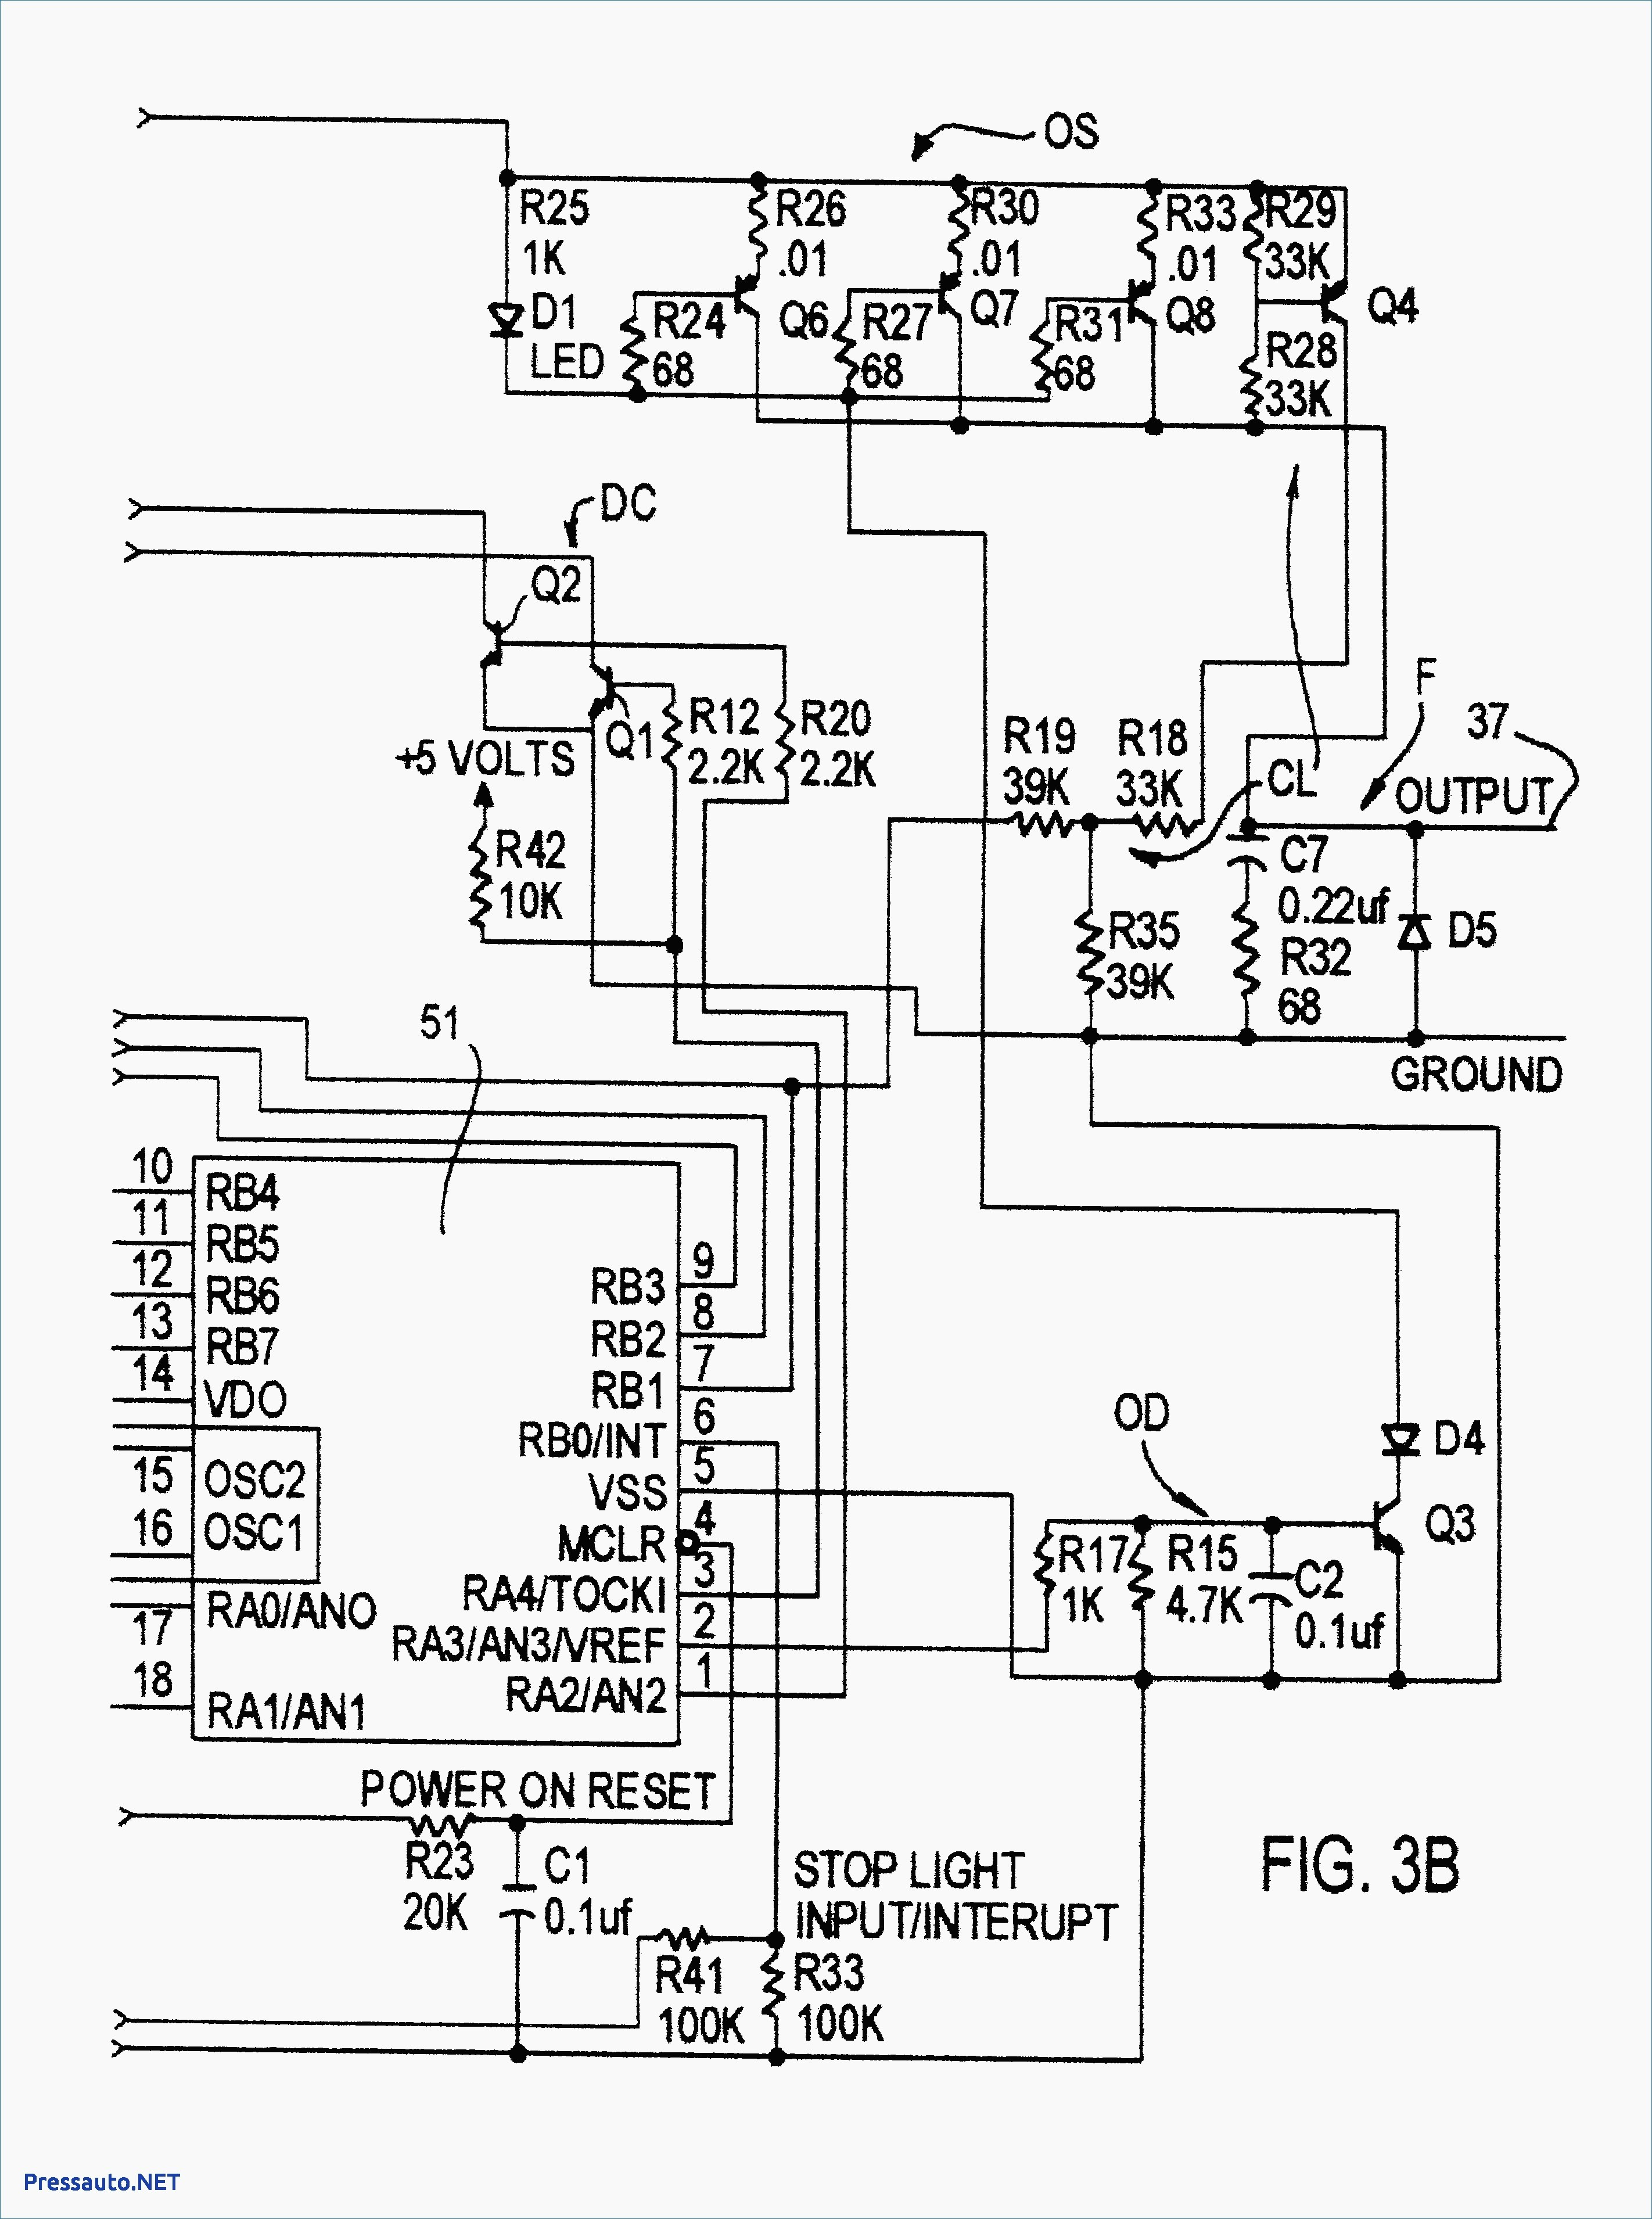 Stearns Brake Wiring Diagram Electric Trailer Brakes Wiring Diagram Wiring Diagram Of Stearns Brake Wiring Diagram